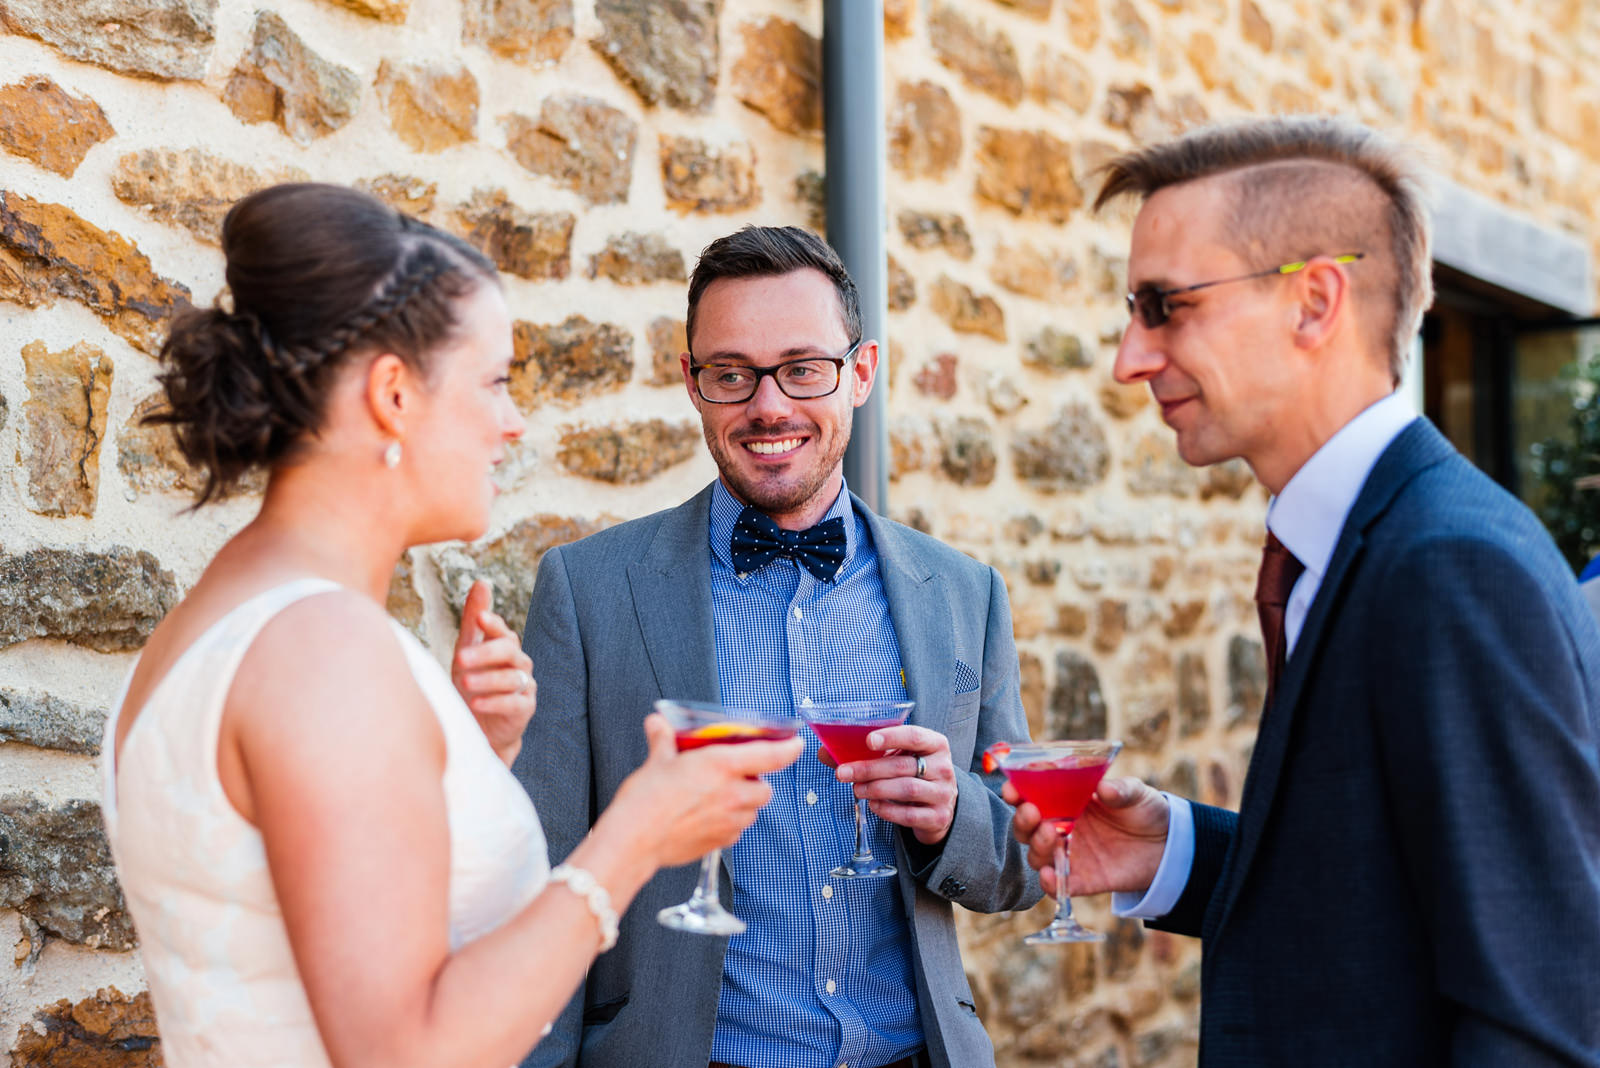 wedding guests enjoying cocktails